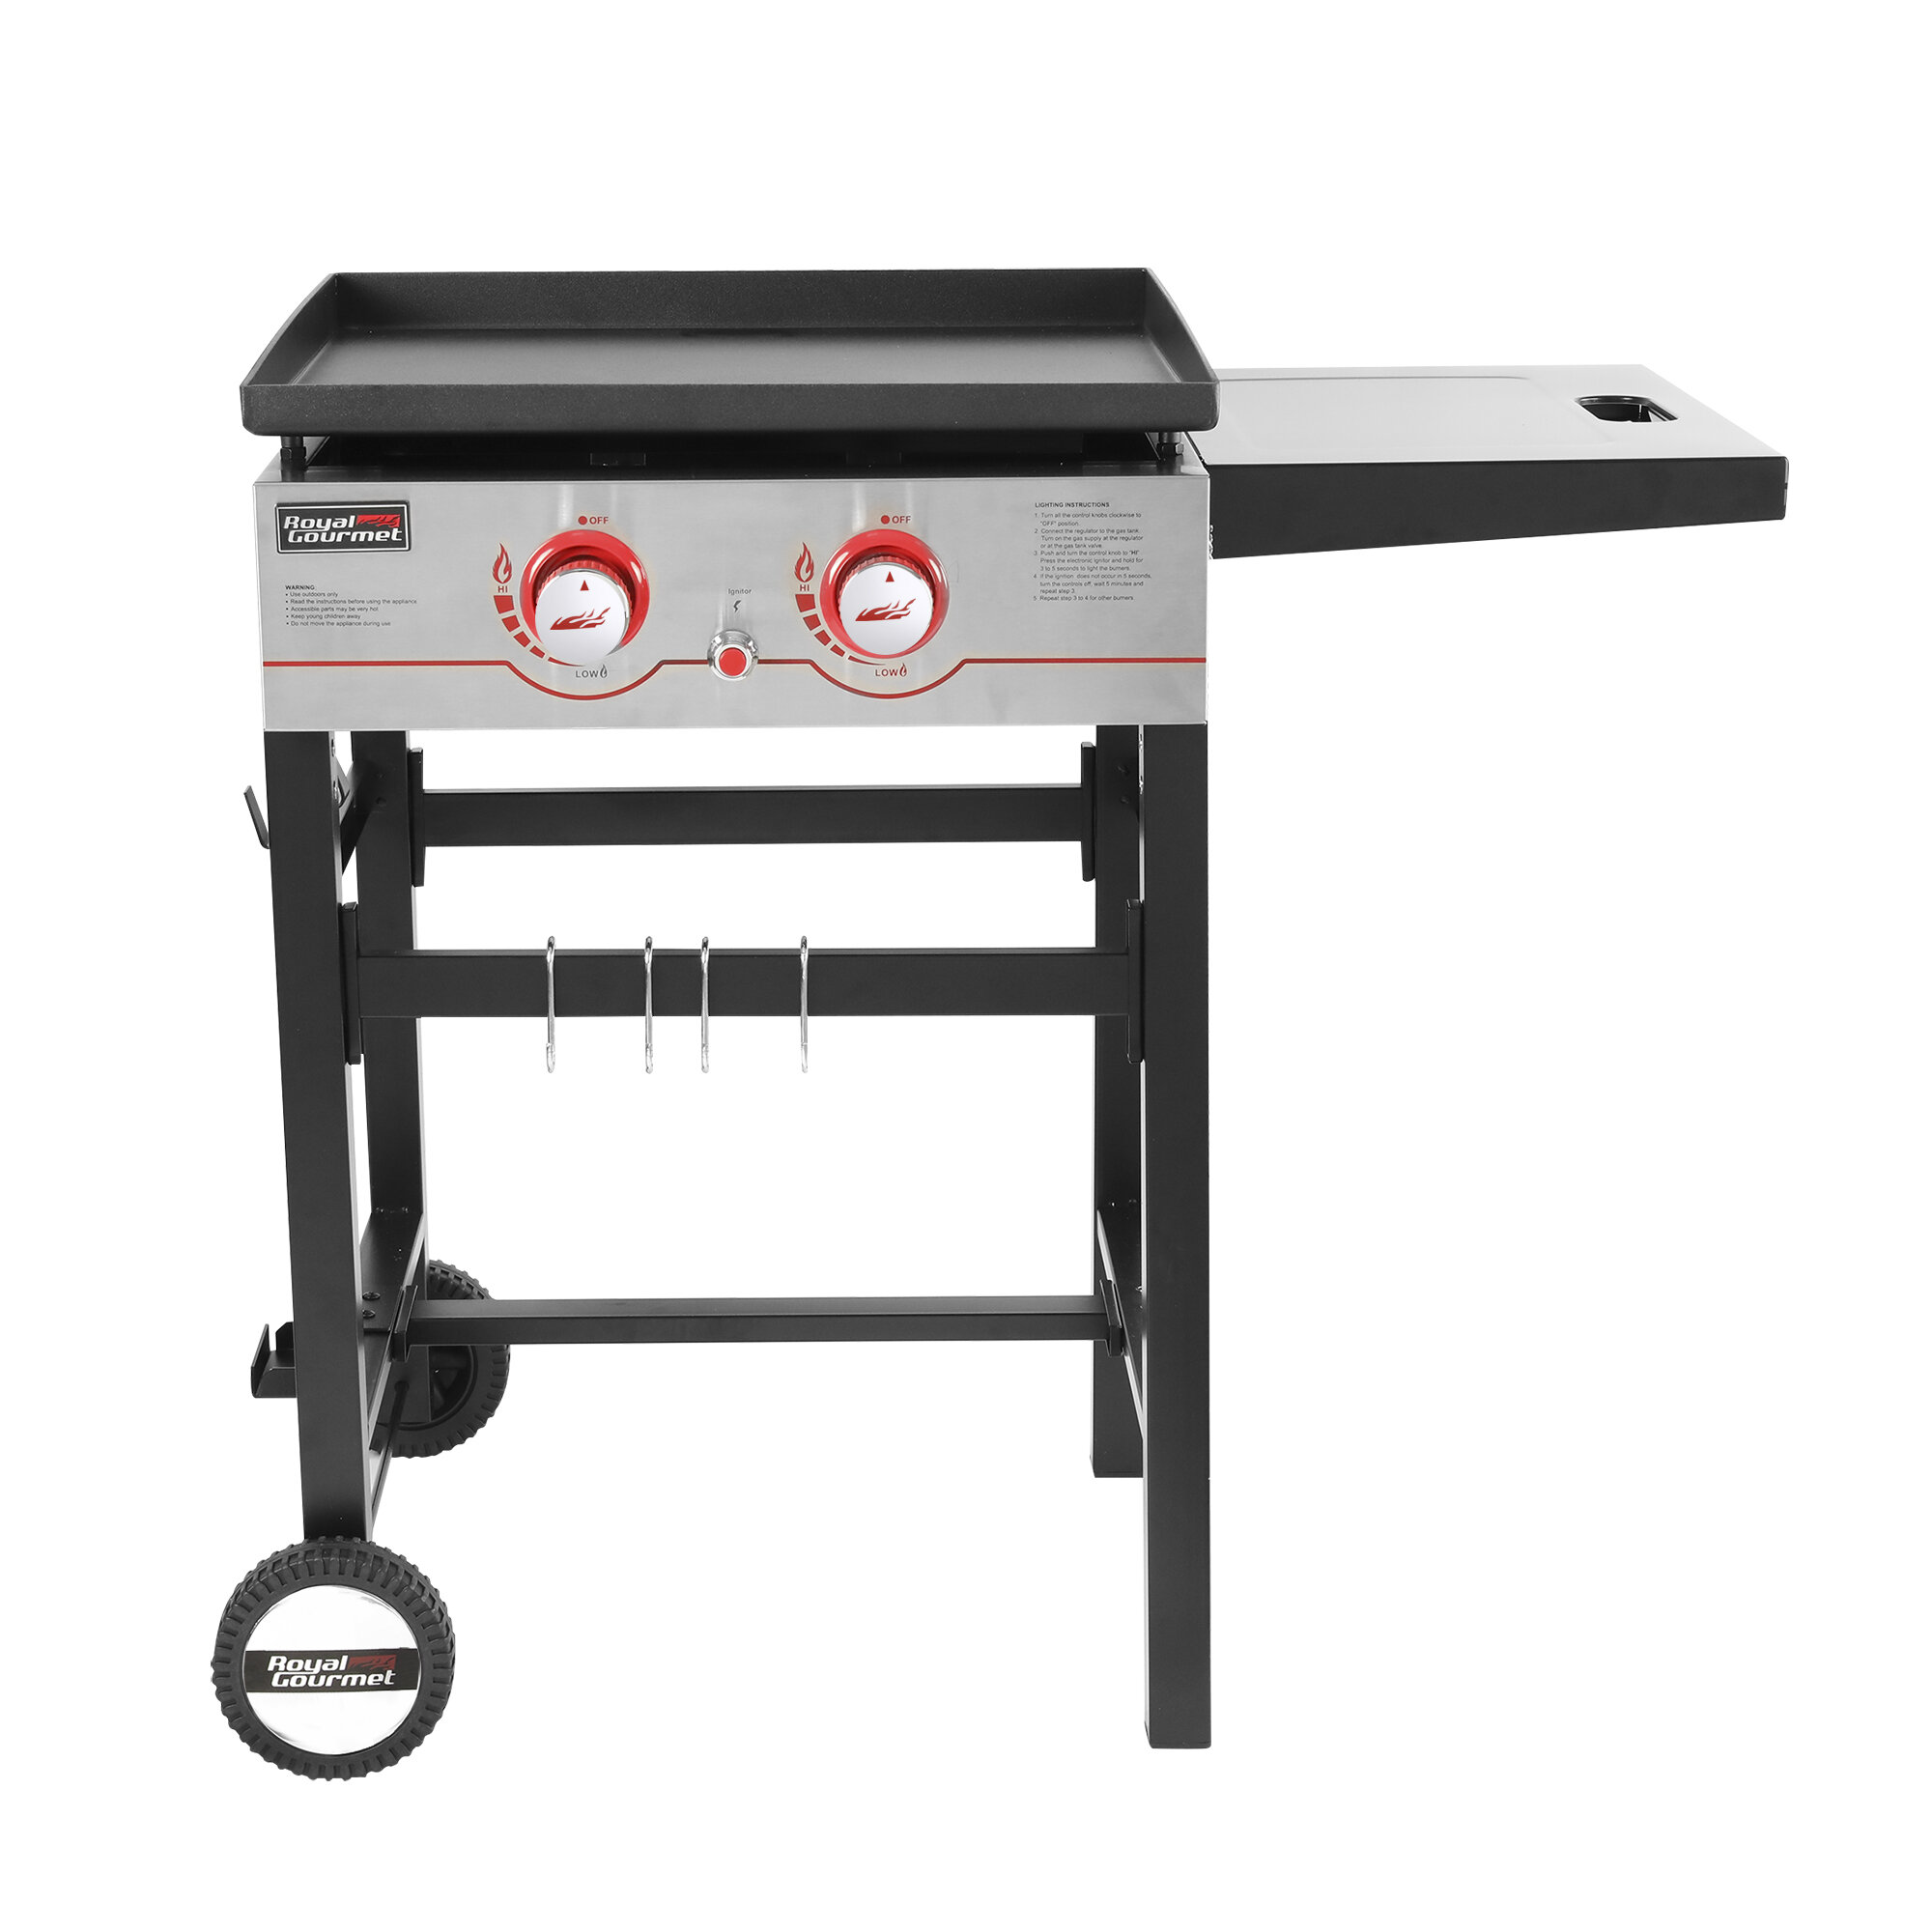 Royal Gourmet 2 Burner Flat Top Propane Gas Grill With Side Table Reviews Wayfair